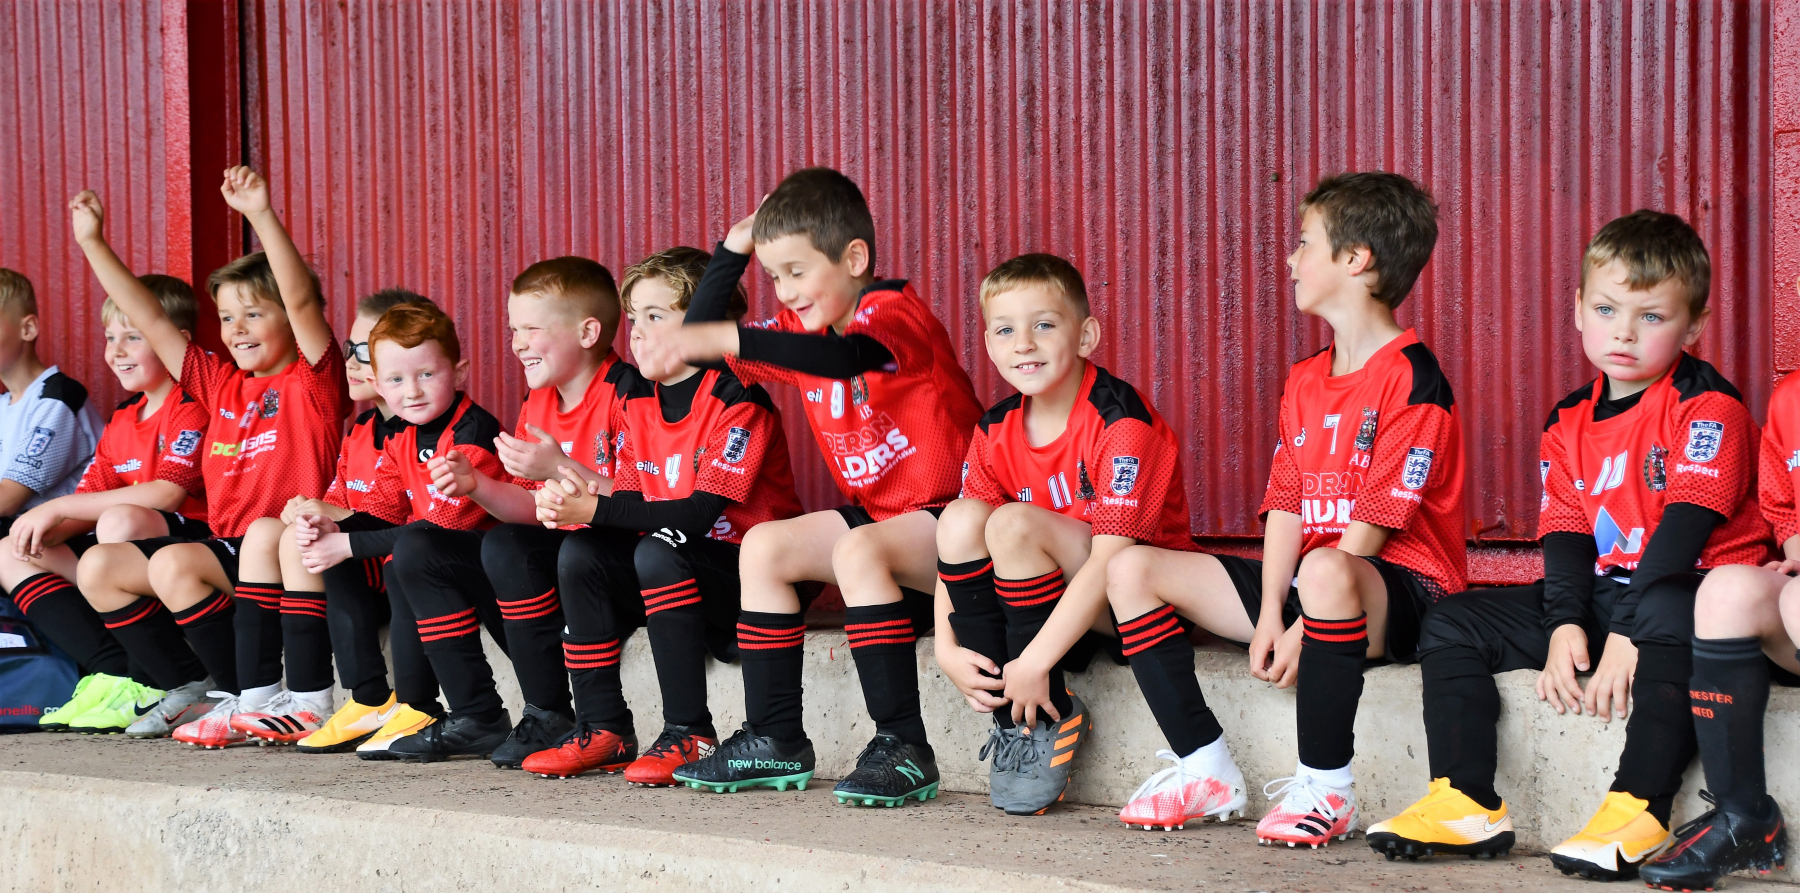 Reds Festival of Football – the Juniors learn the Mexican wave